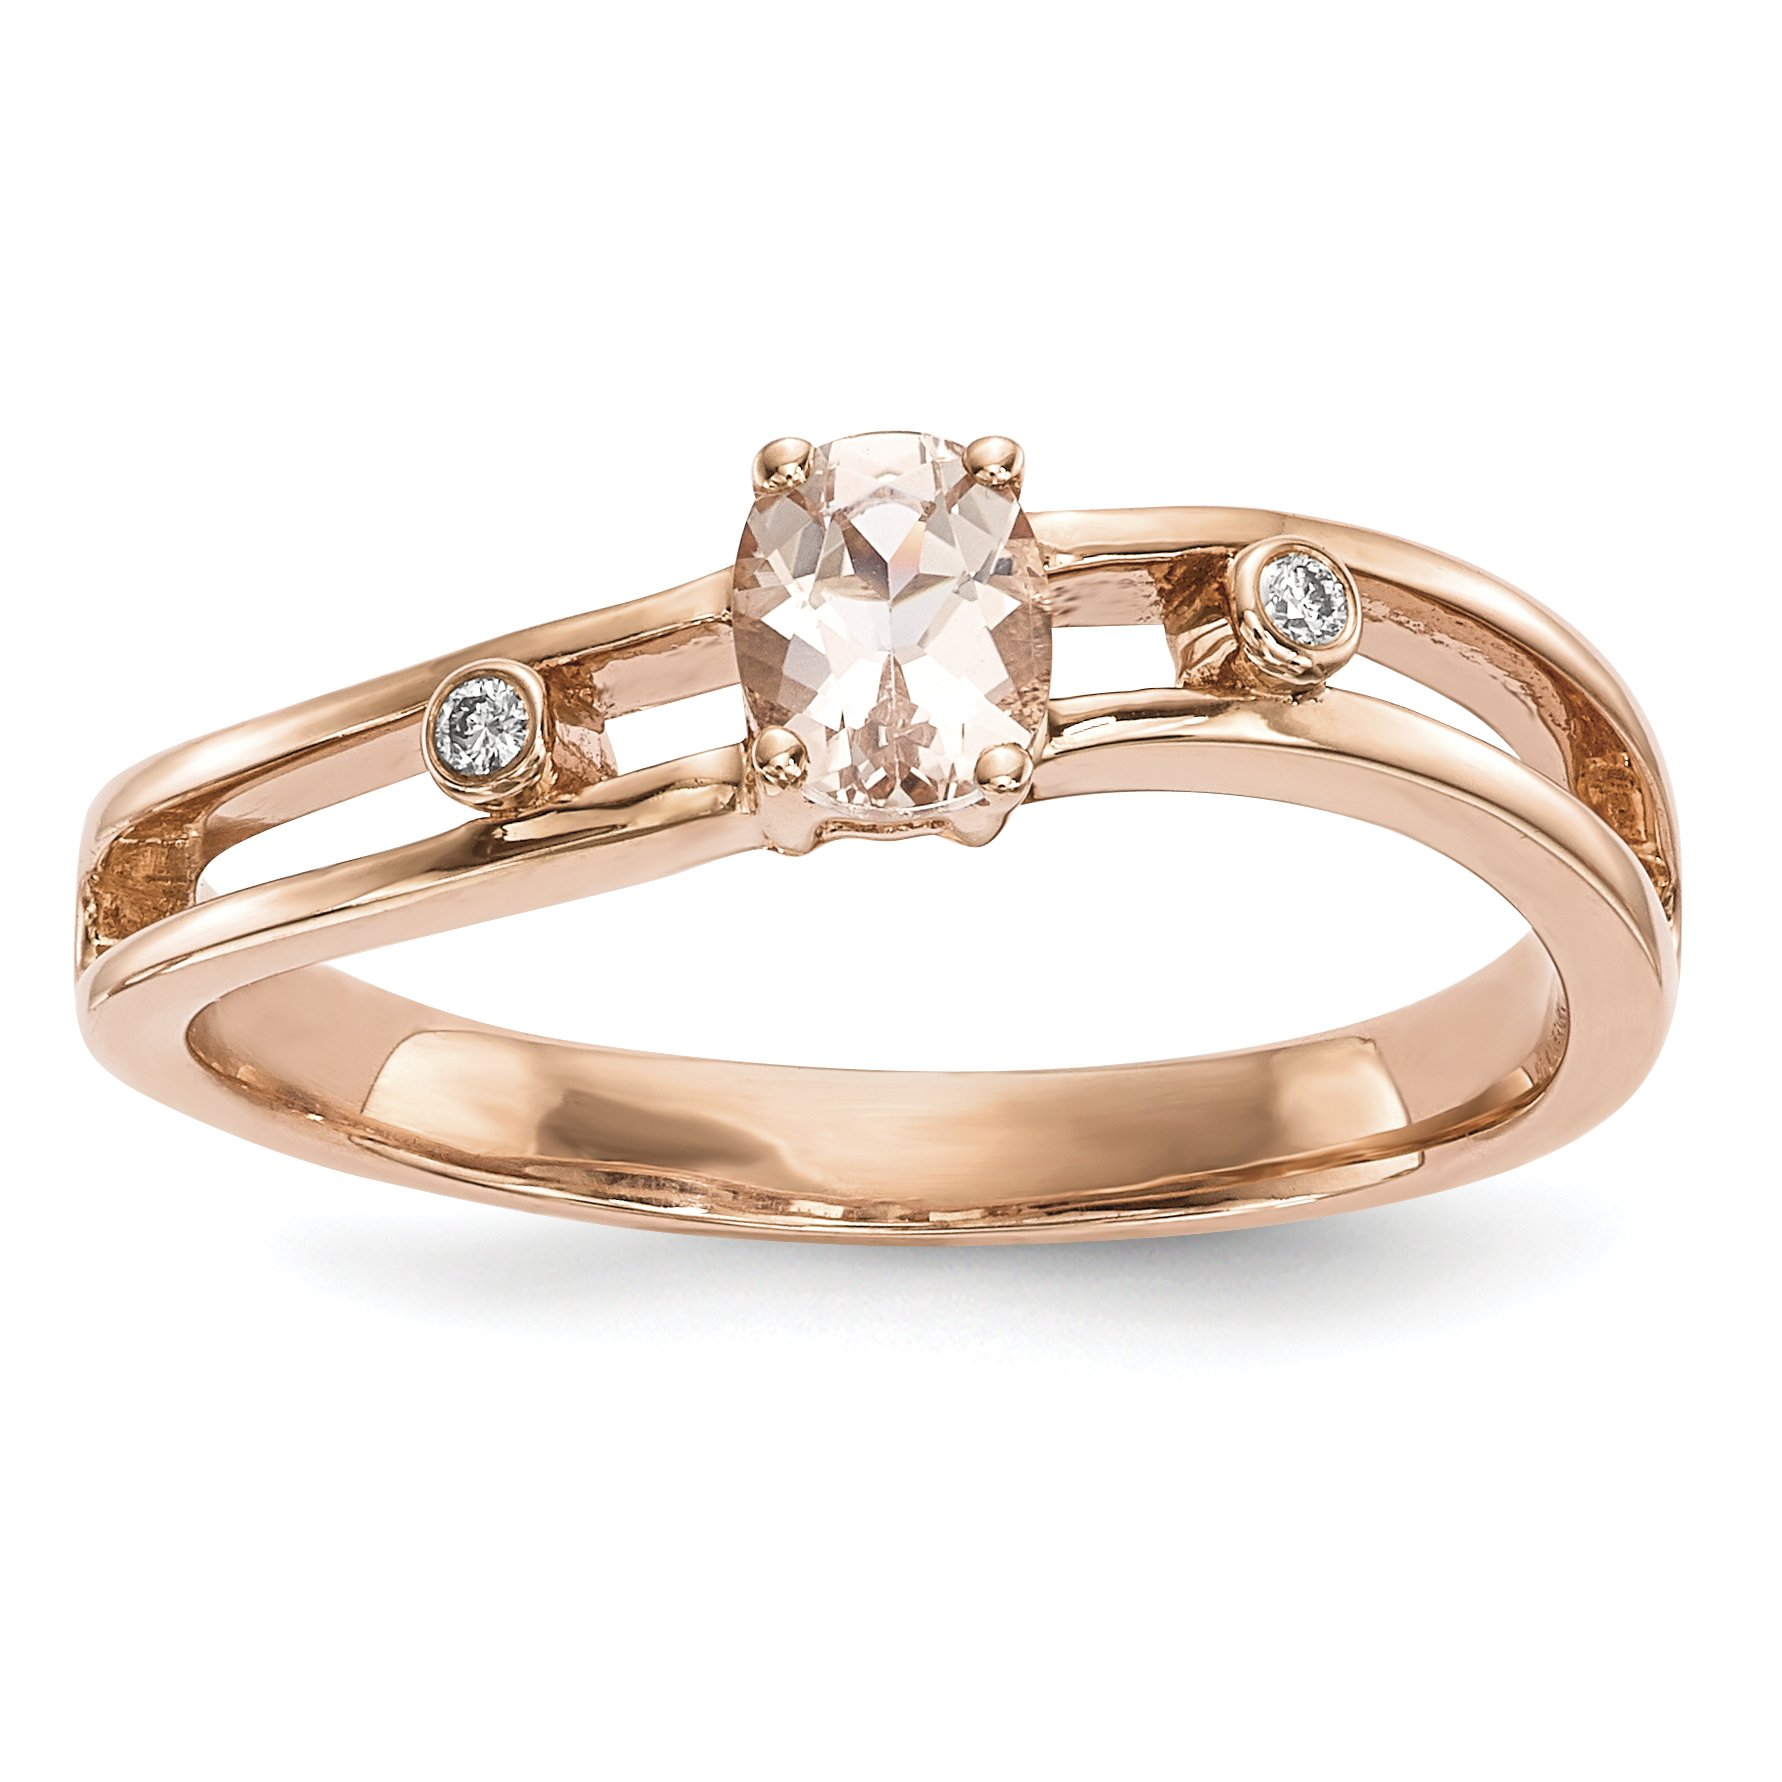 ICE CARATS 14k Rose Gold Pink Morganite Diamond Band Ring Size 7.00 Gemstone Fine Jewelry Gift Set For Women Heart